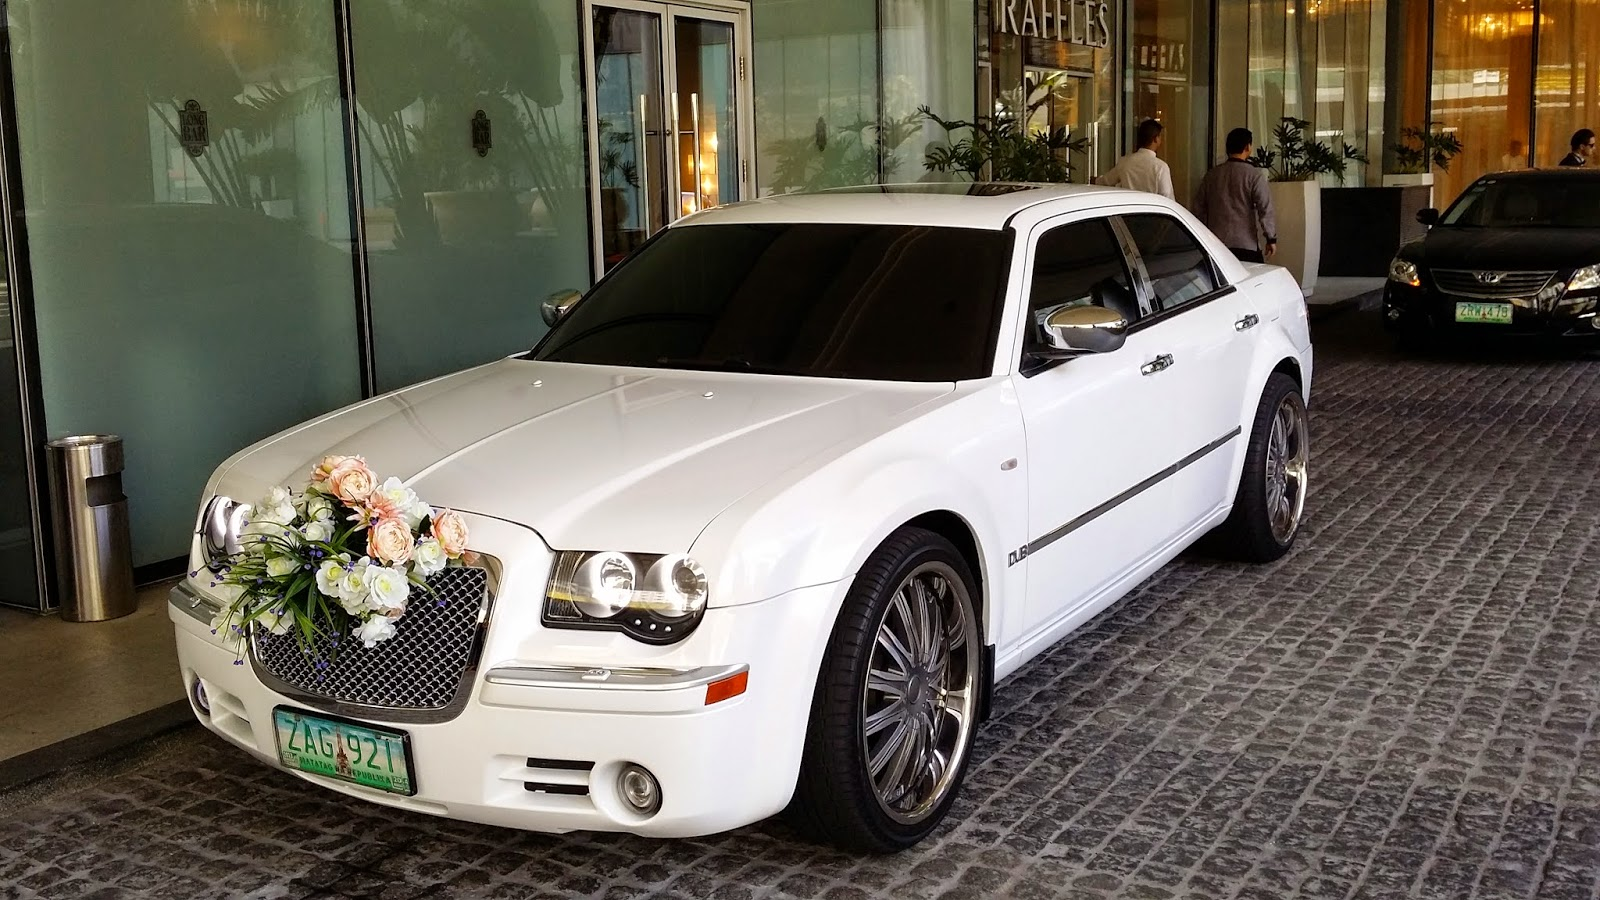 Luxury Vehicle: Bridal Car Philippines: BRIDAL CAR PHILIPPINES FOR RENT